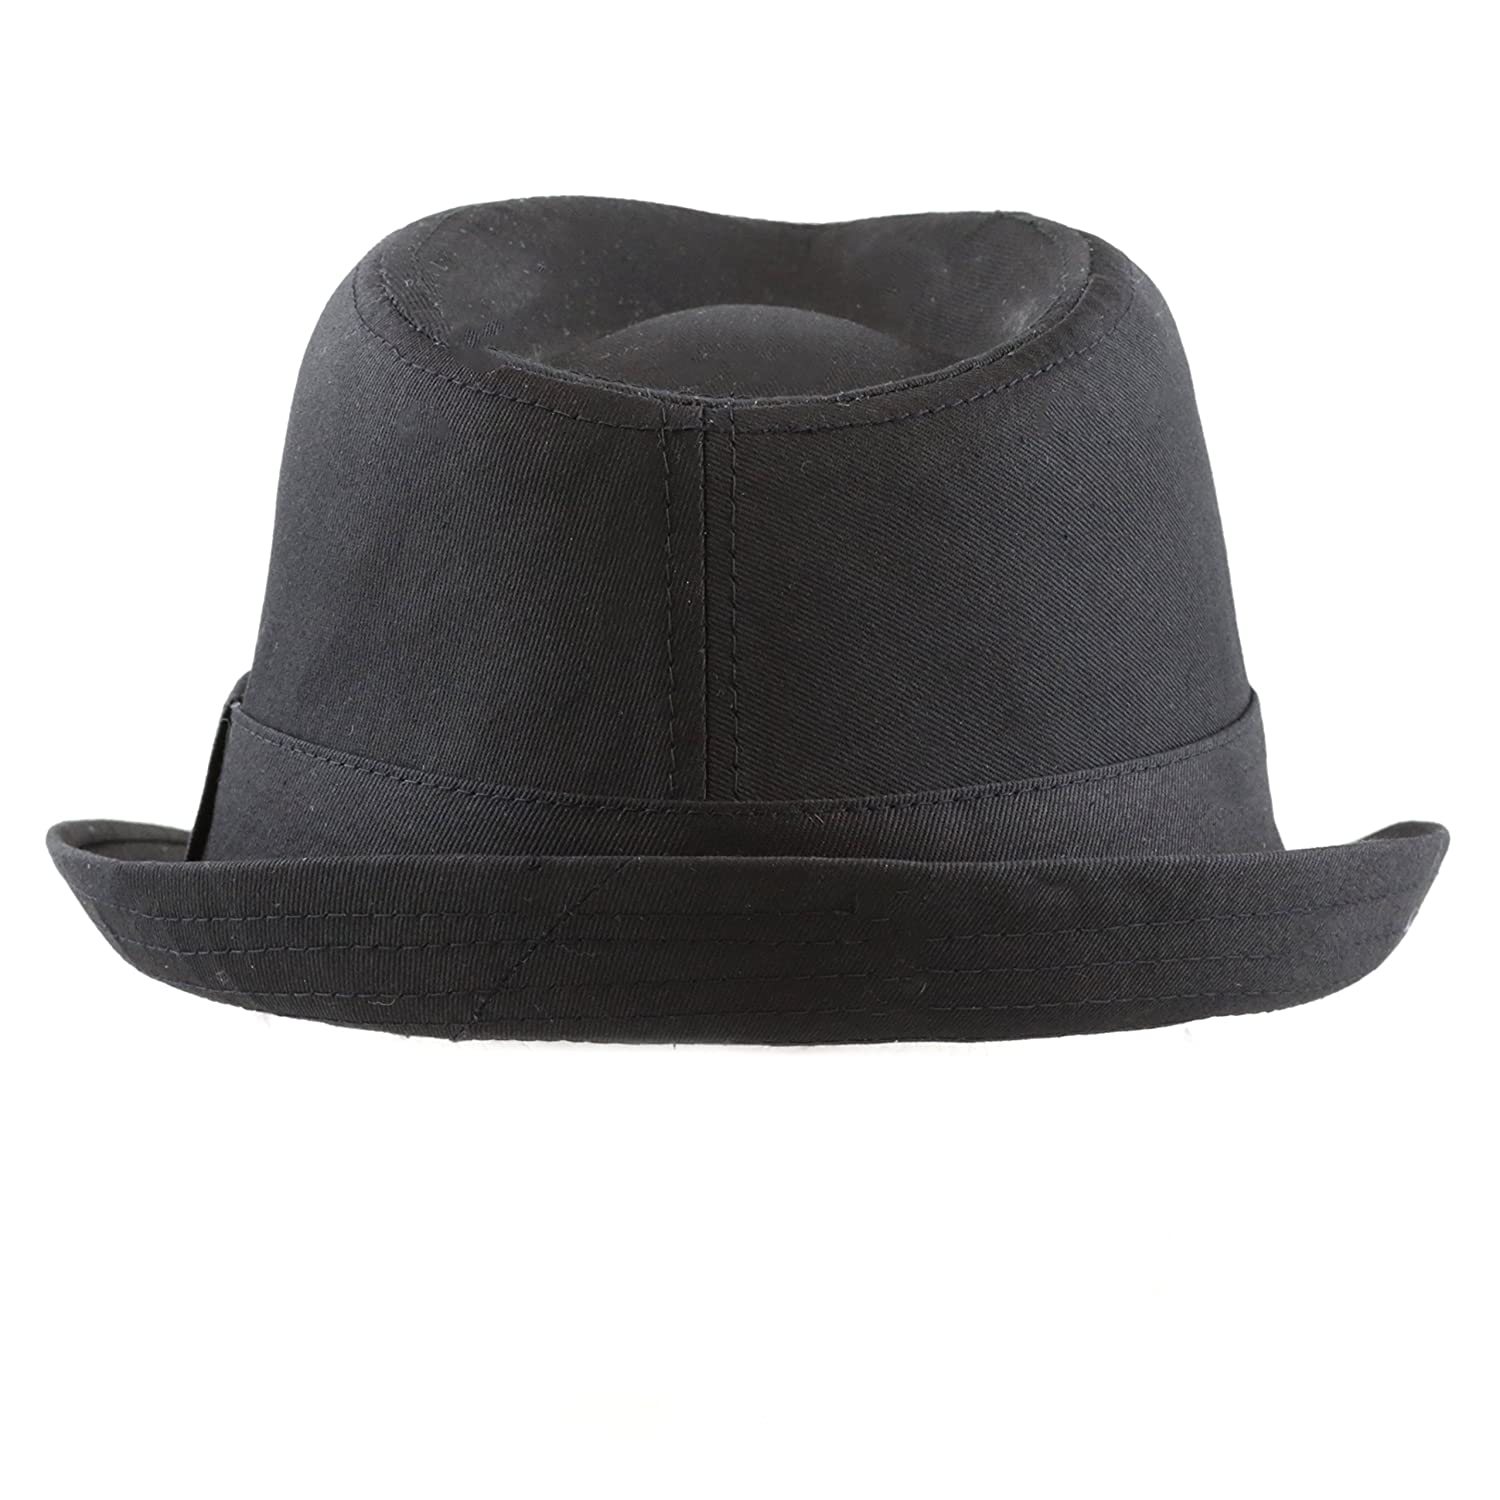 82fa0ddd538 THE HAT DEPOT Unisex Cotton Twill Paisley Lining Solid Fedora Hat at Amazon  Men s Clothing store